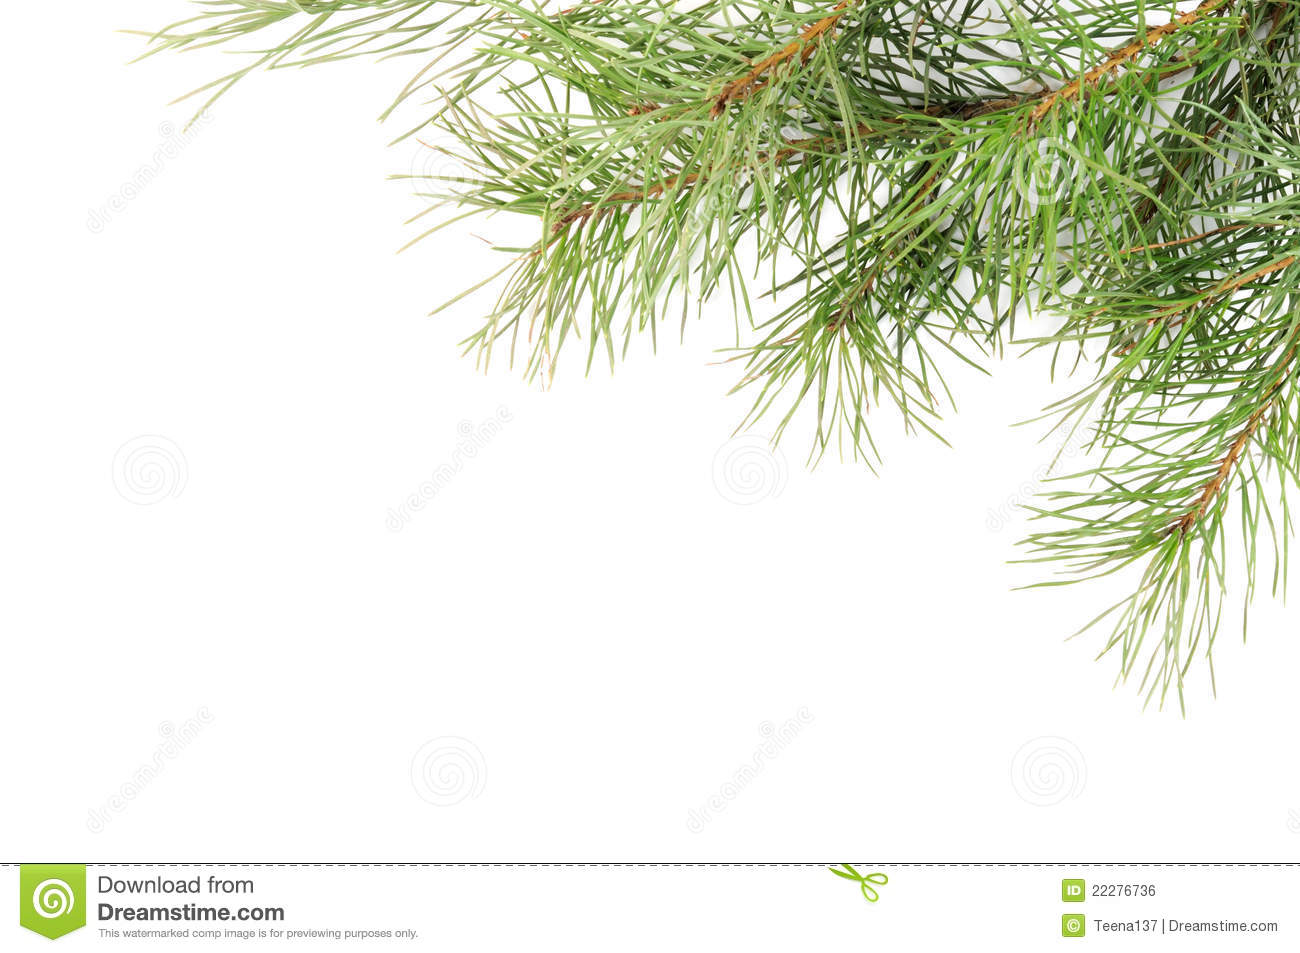 Christmas Tree Branches Royalty Free Stock Image - Image: 22276736